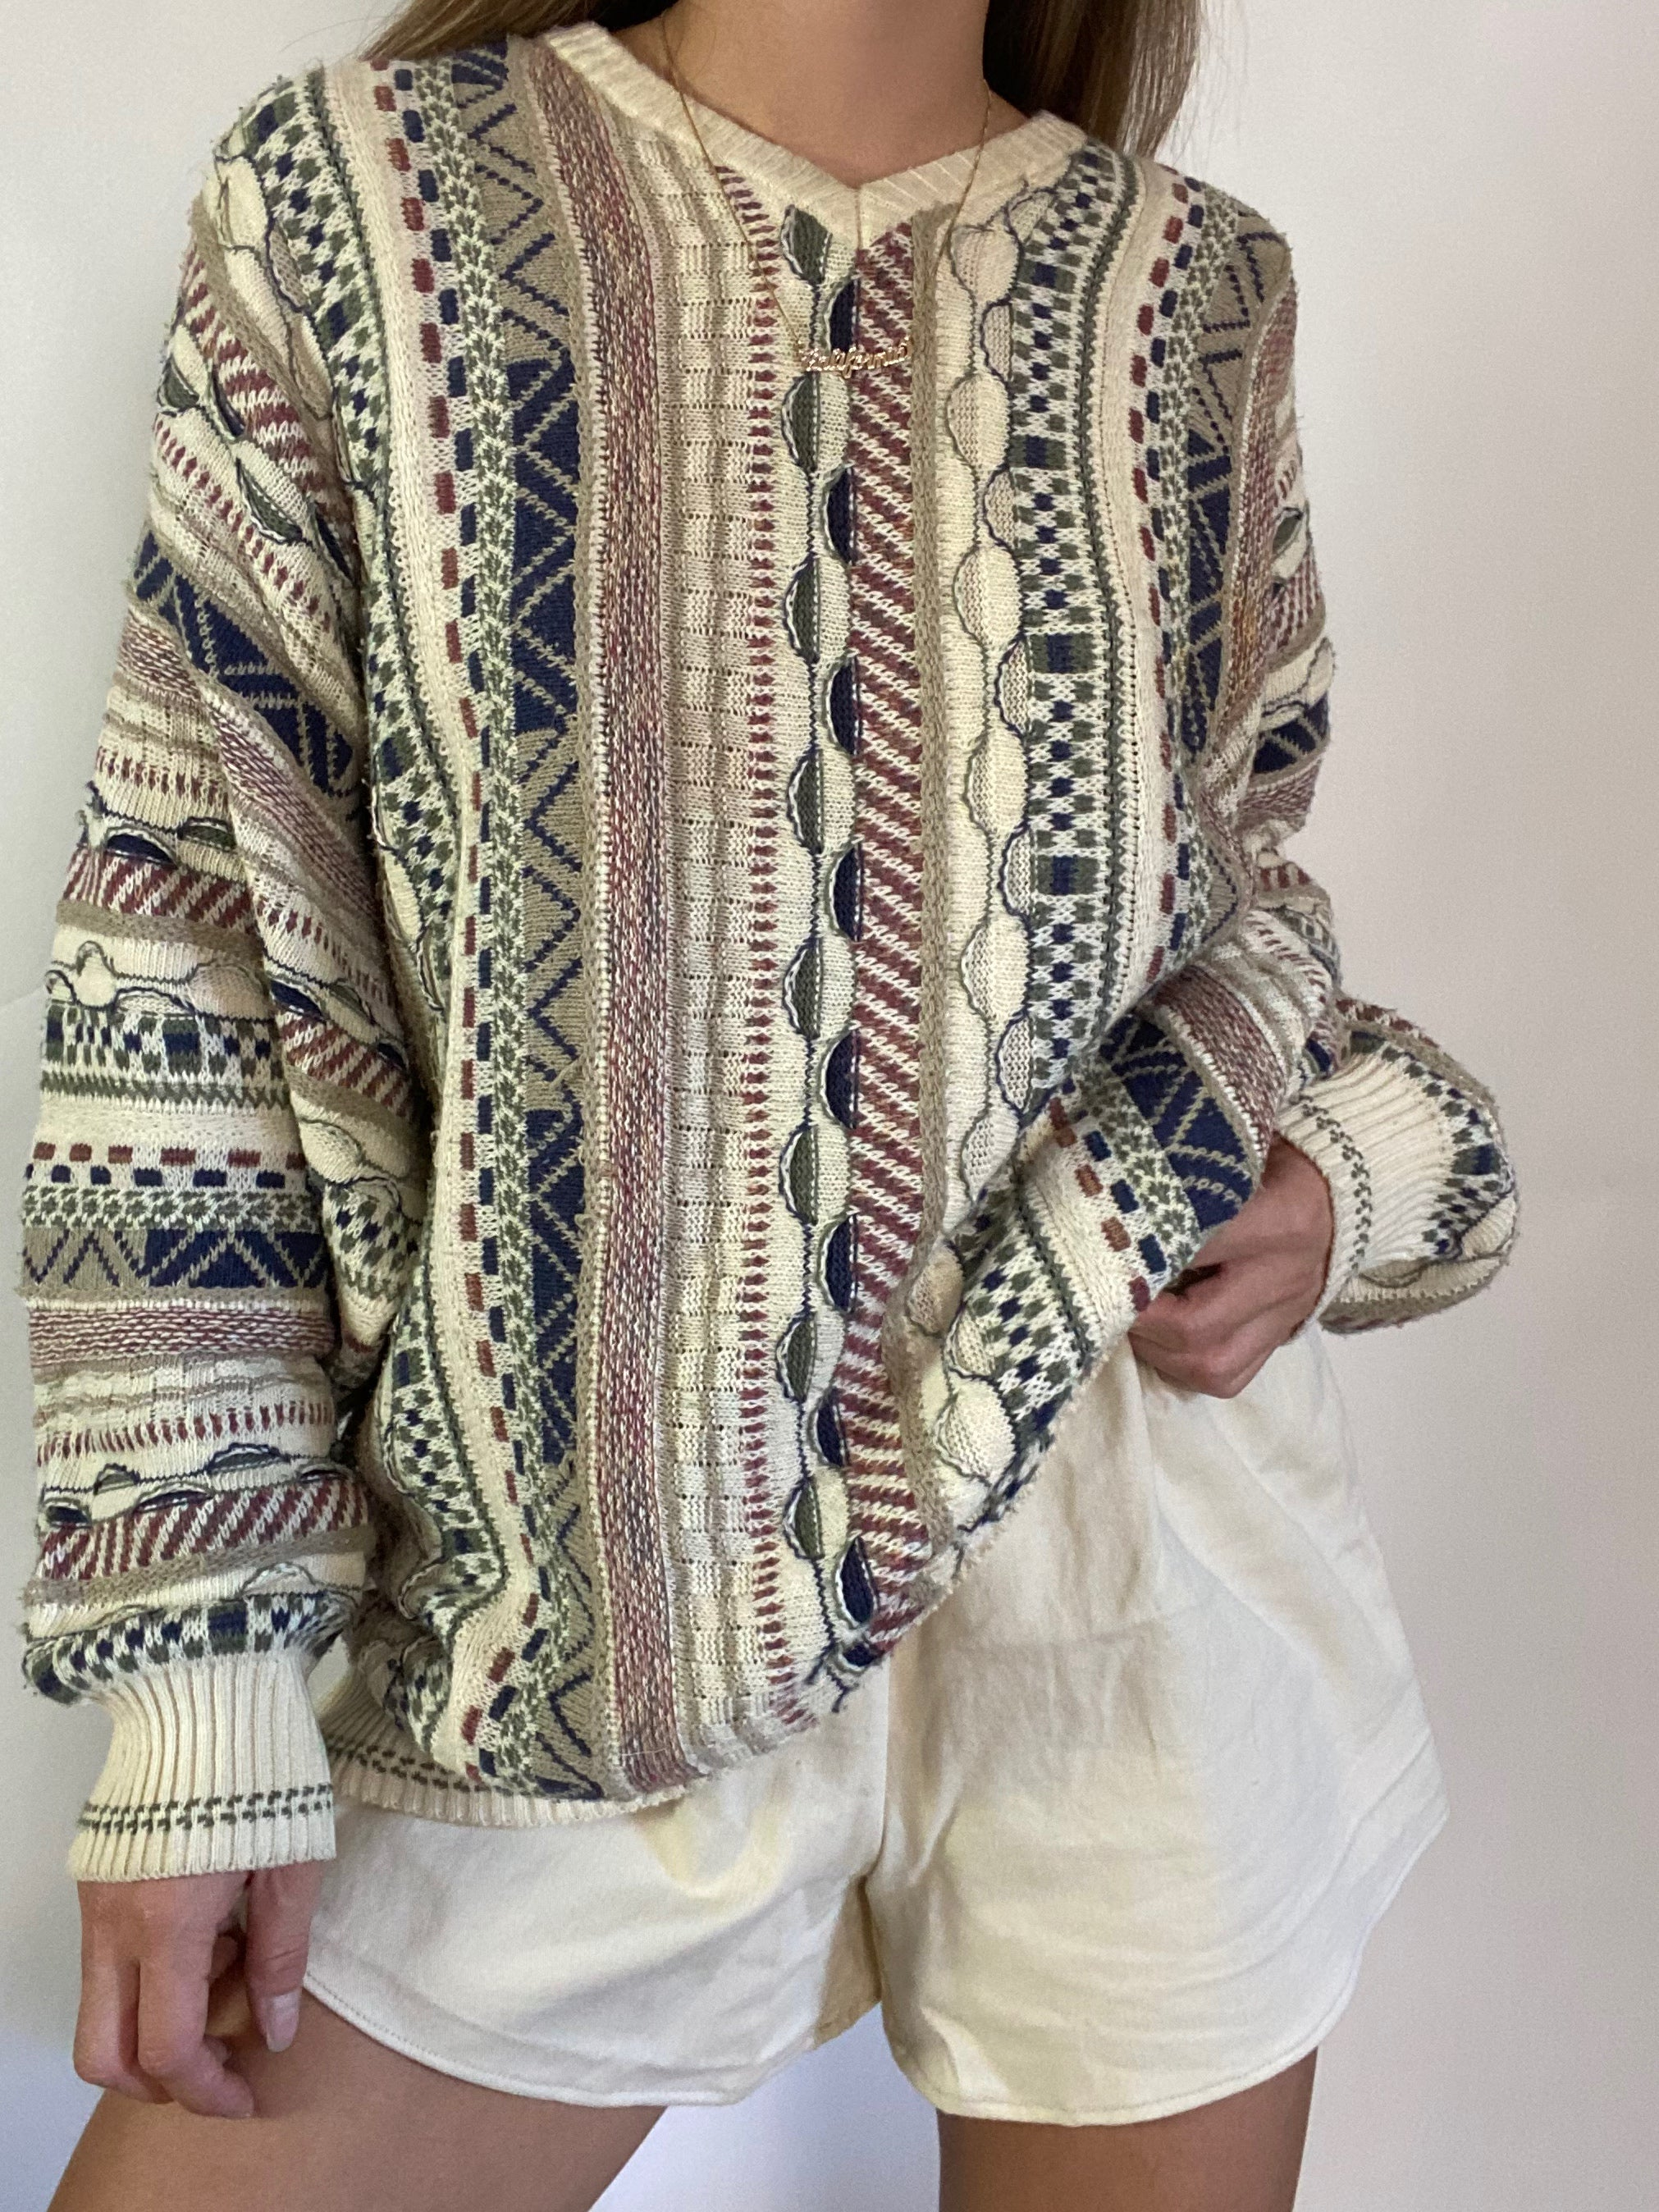 Vintage cable knit sweater